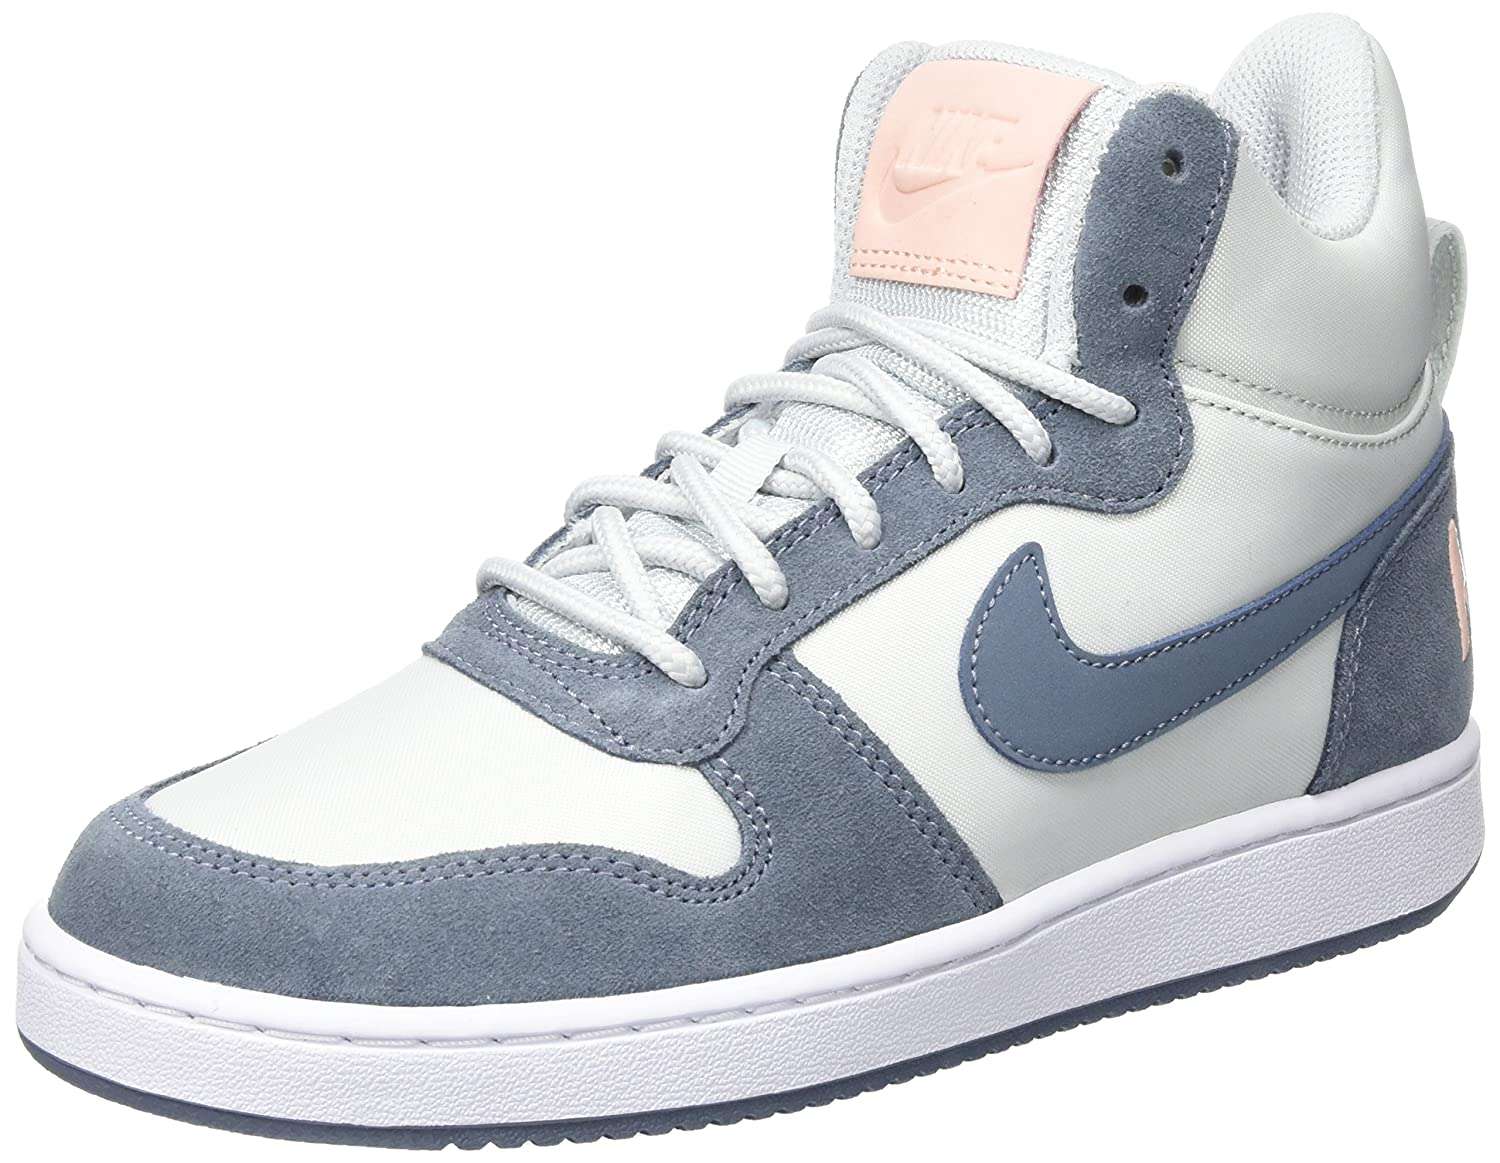 Nike W Court Borough Mid Prem, Zapatillas de Gimnasia Para Mujer 38.5 EU|Blanco (Pure Platinum/Armory Blue/White/Sunset Tint)